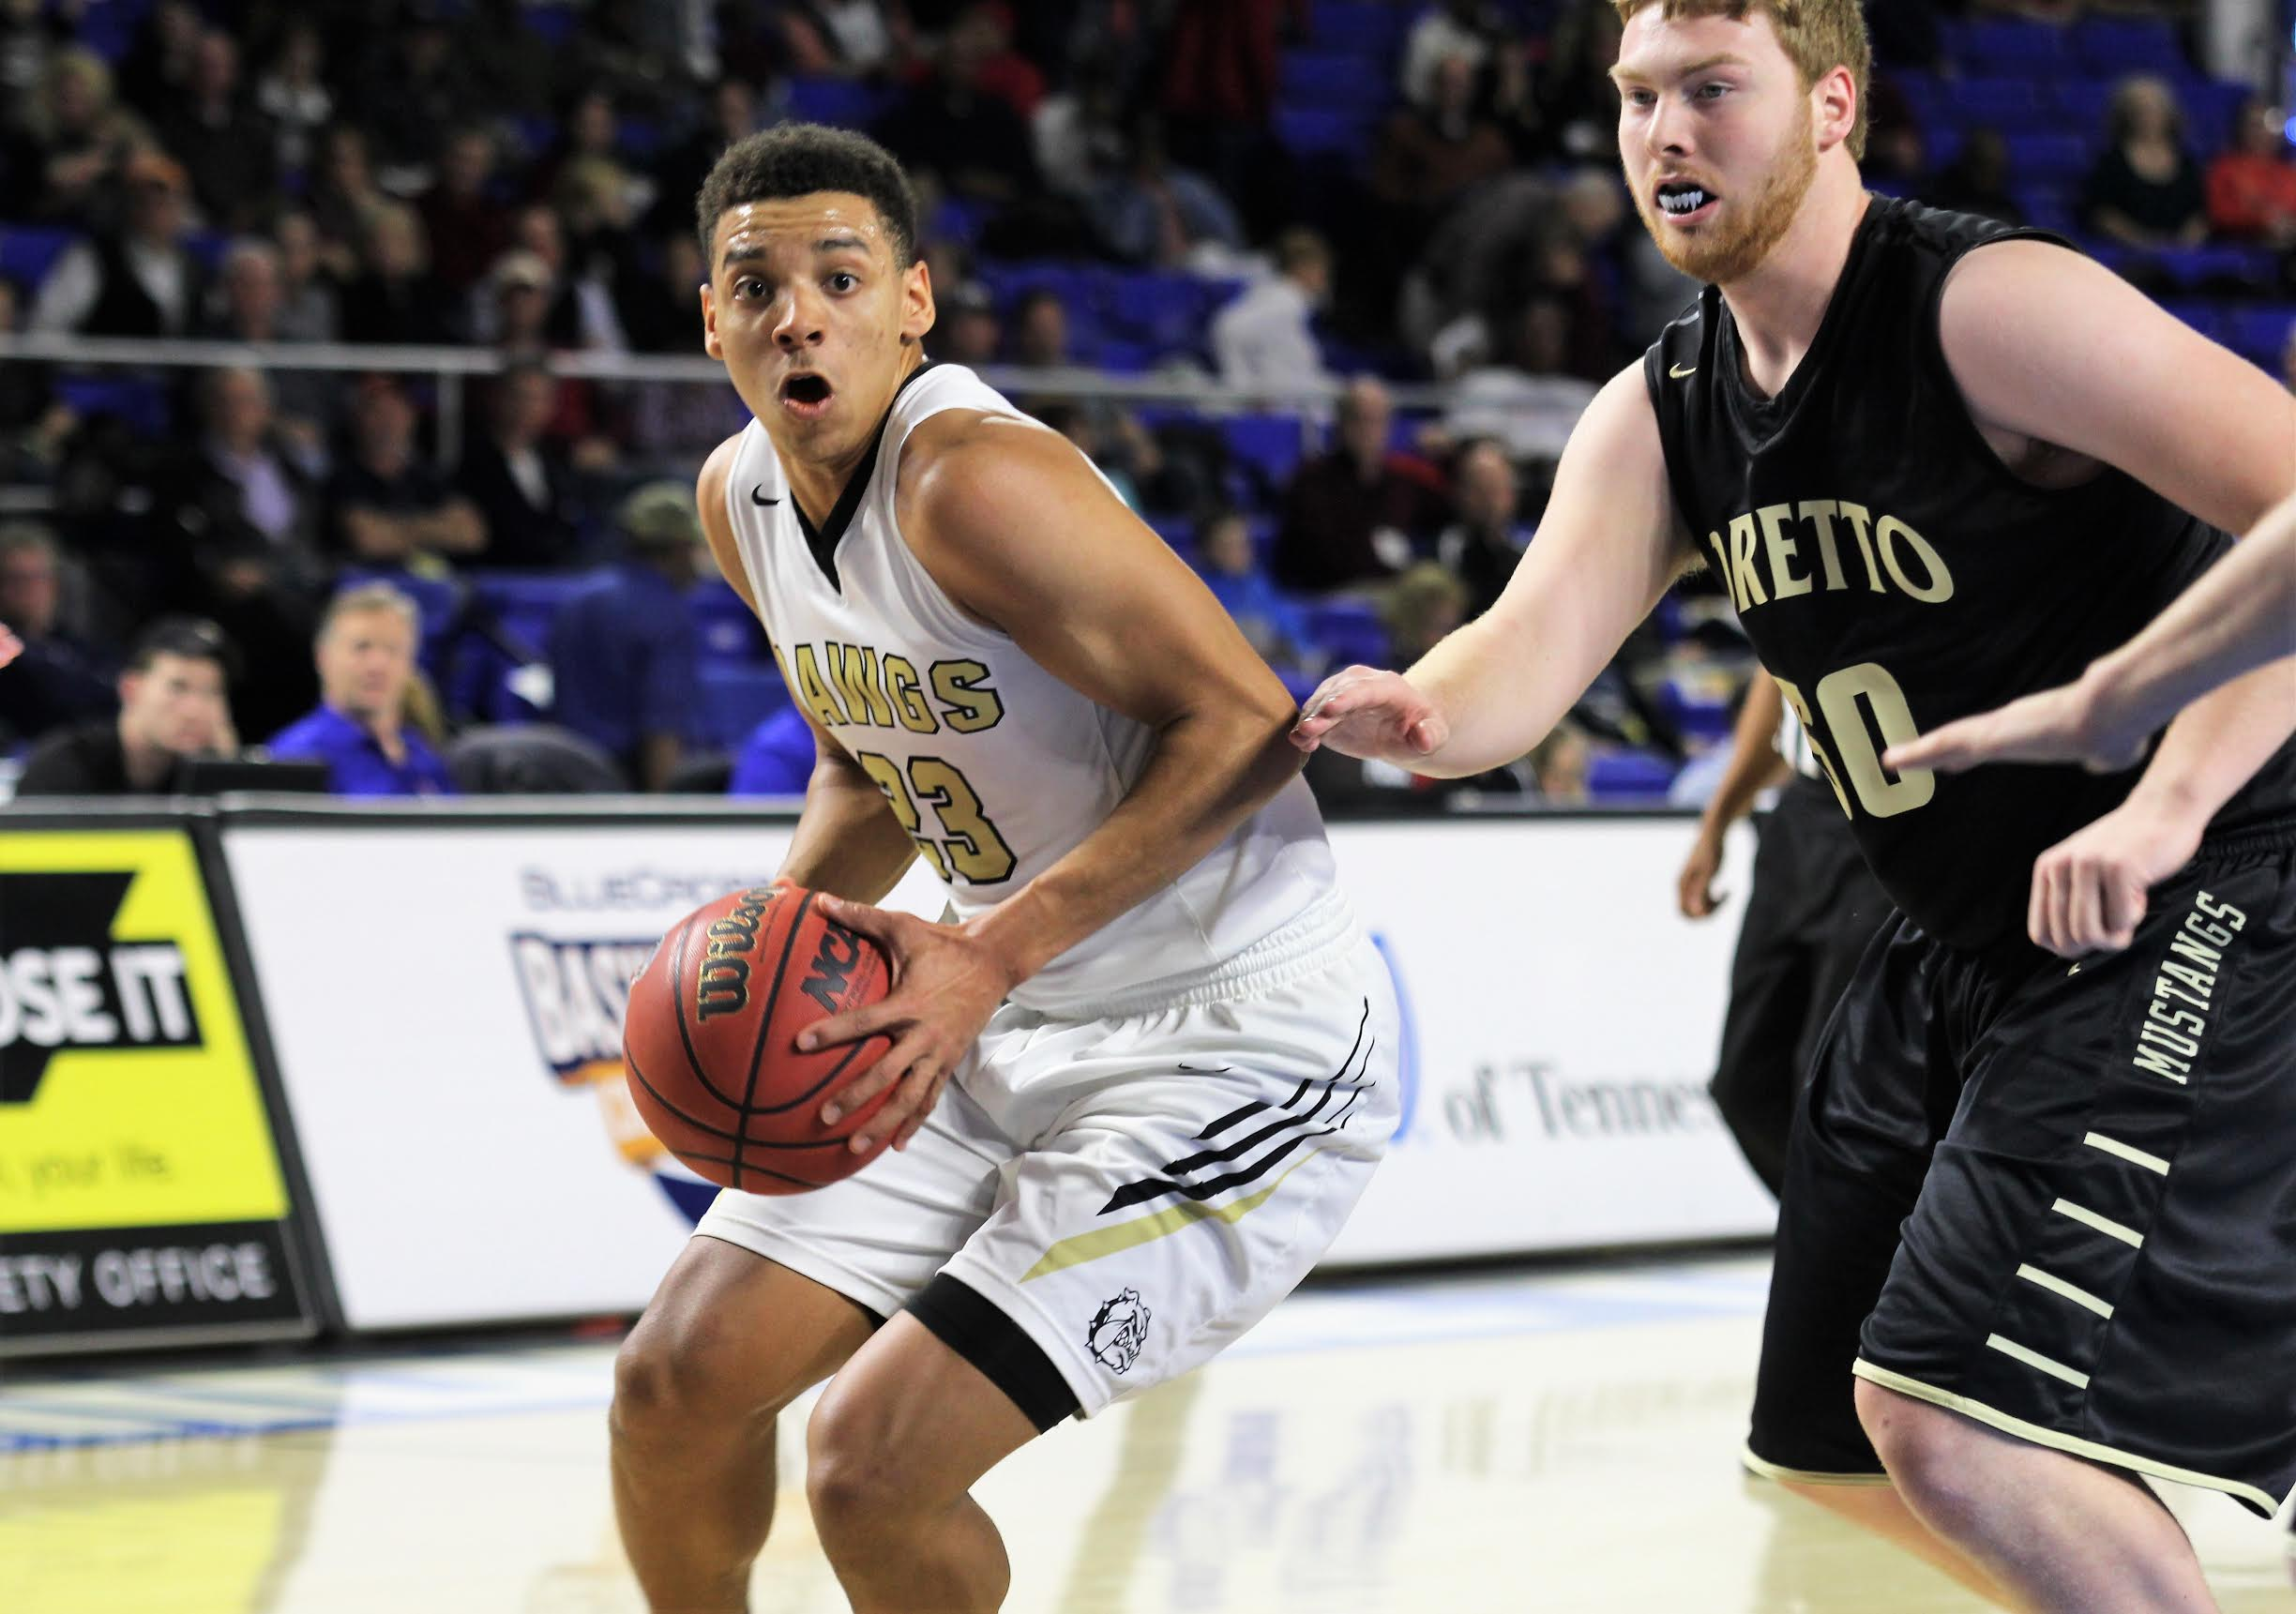 Clay County's Tyreke Key earned All-State honors in Class A. (photo courtesy of Scott Wilson, Cookeville Herald-Citizen)